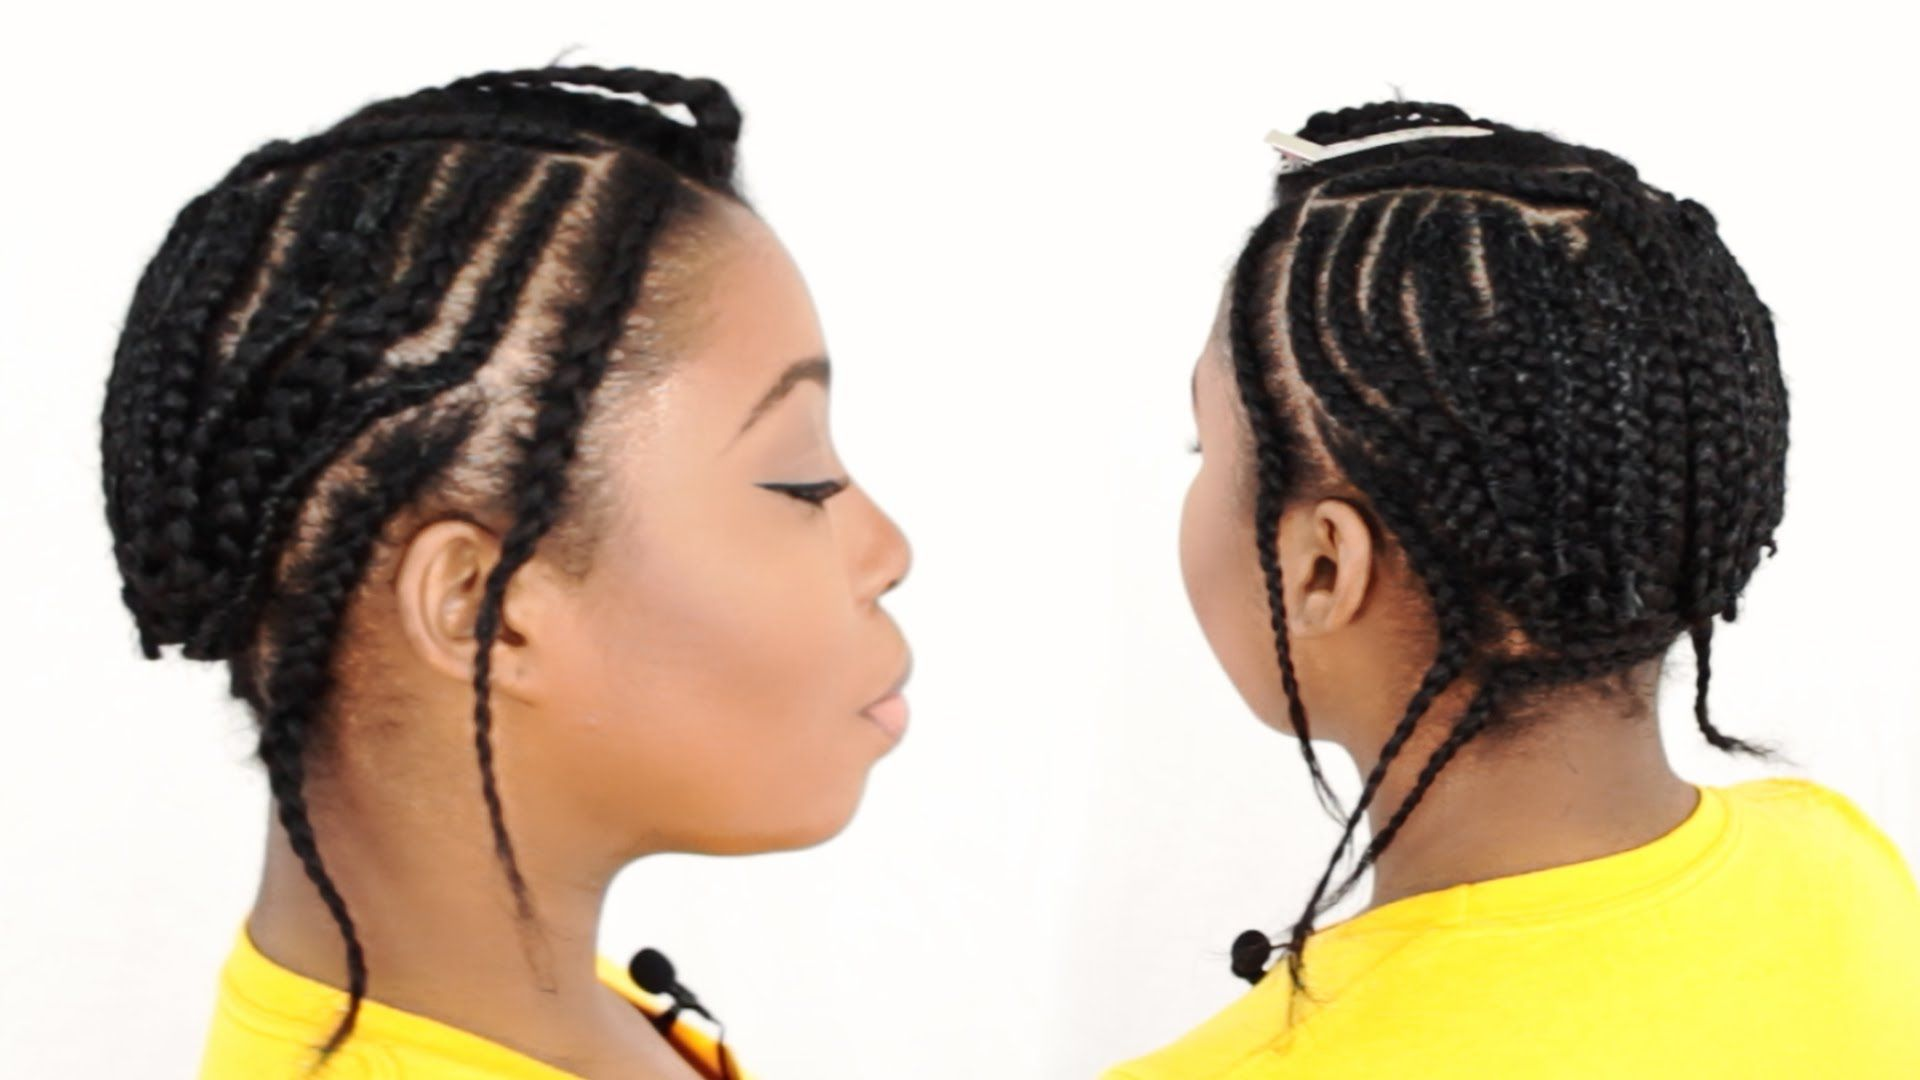 Sew In Braid Pattern With Leave Out Tutorial Part 2 Of 7 Braids With Weave Sew In Braids Braids With Extensions